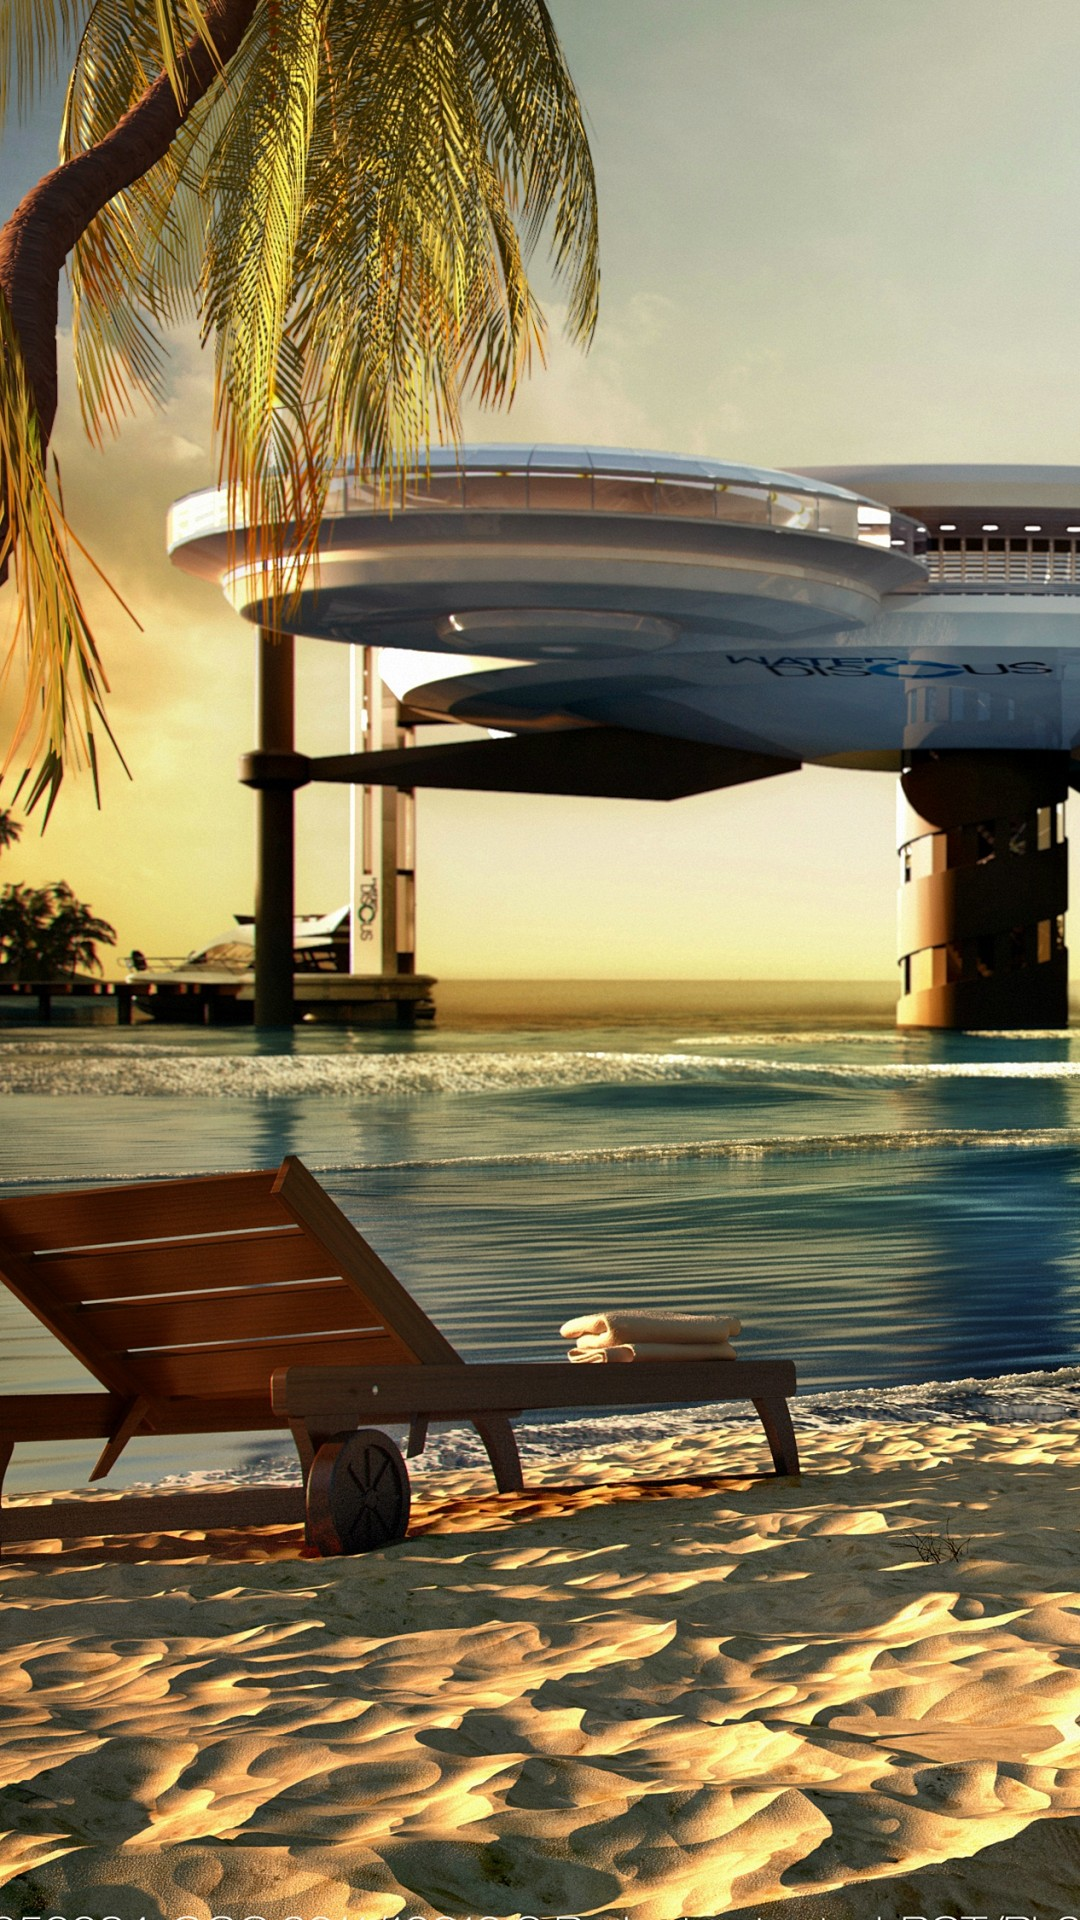 Best Hd Wallpapers With Quotes Wallpaper Water Discus Hotel Dubai Sea Ocean Travel